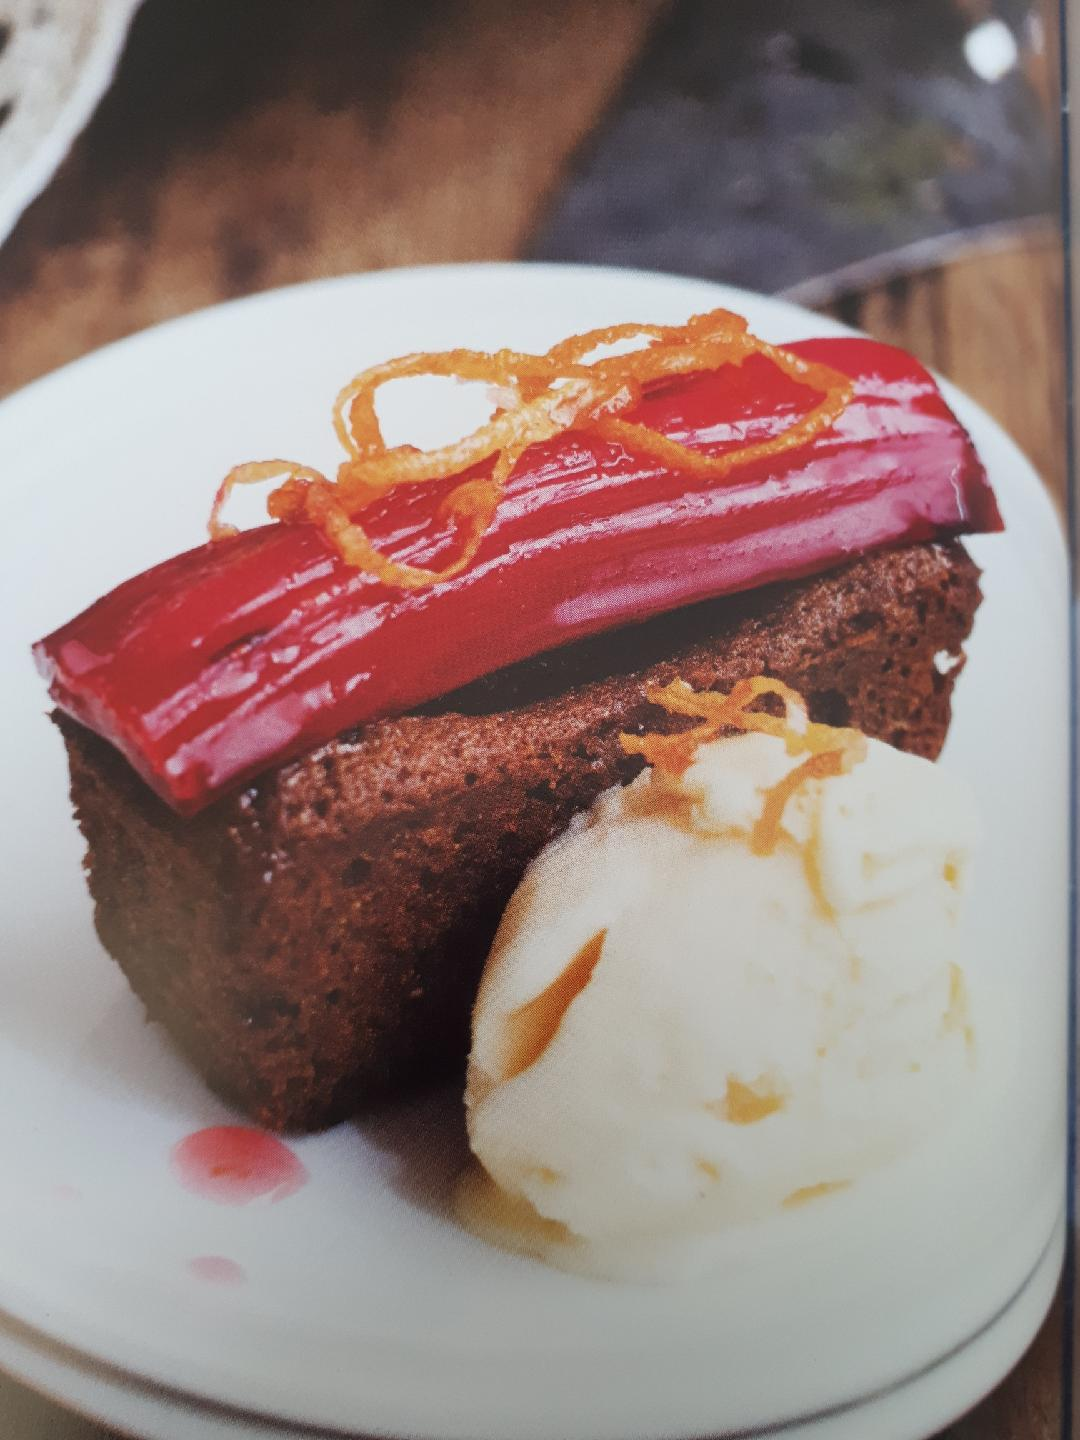 Gingerbread, Rhubarb and Honey Ice Cream